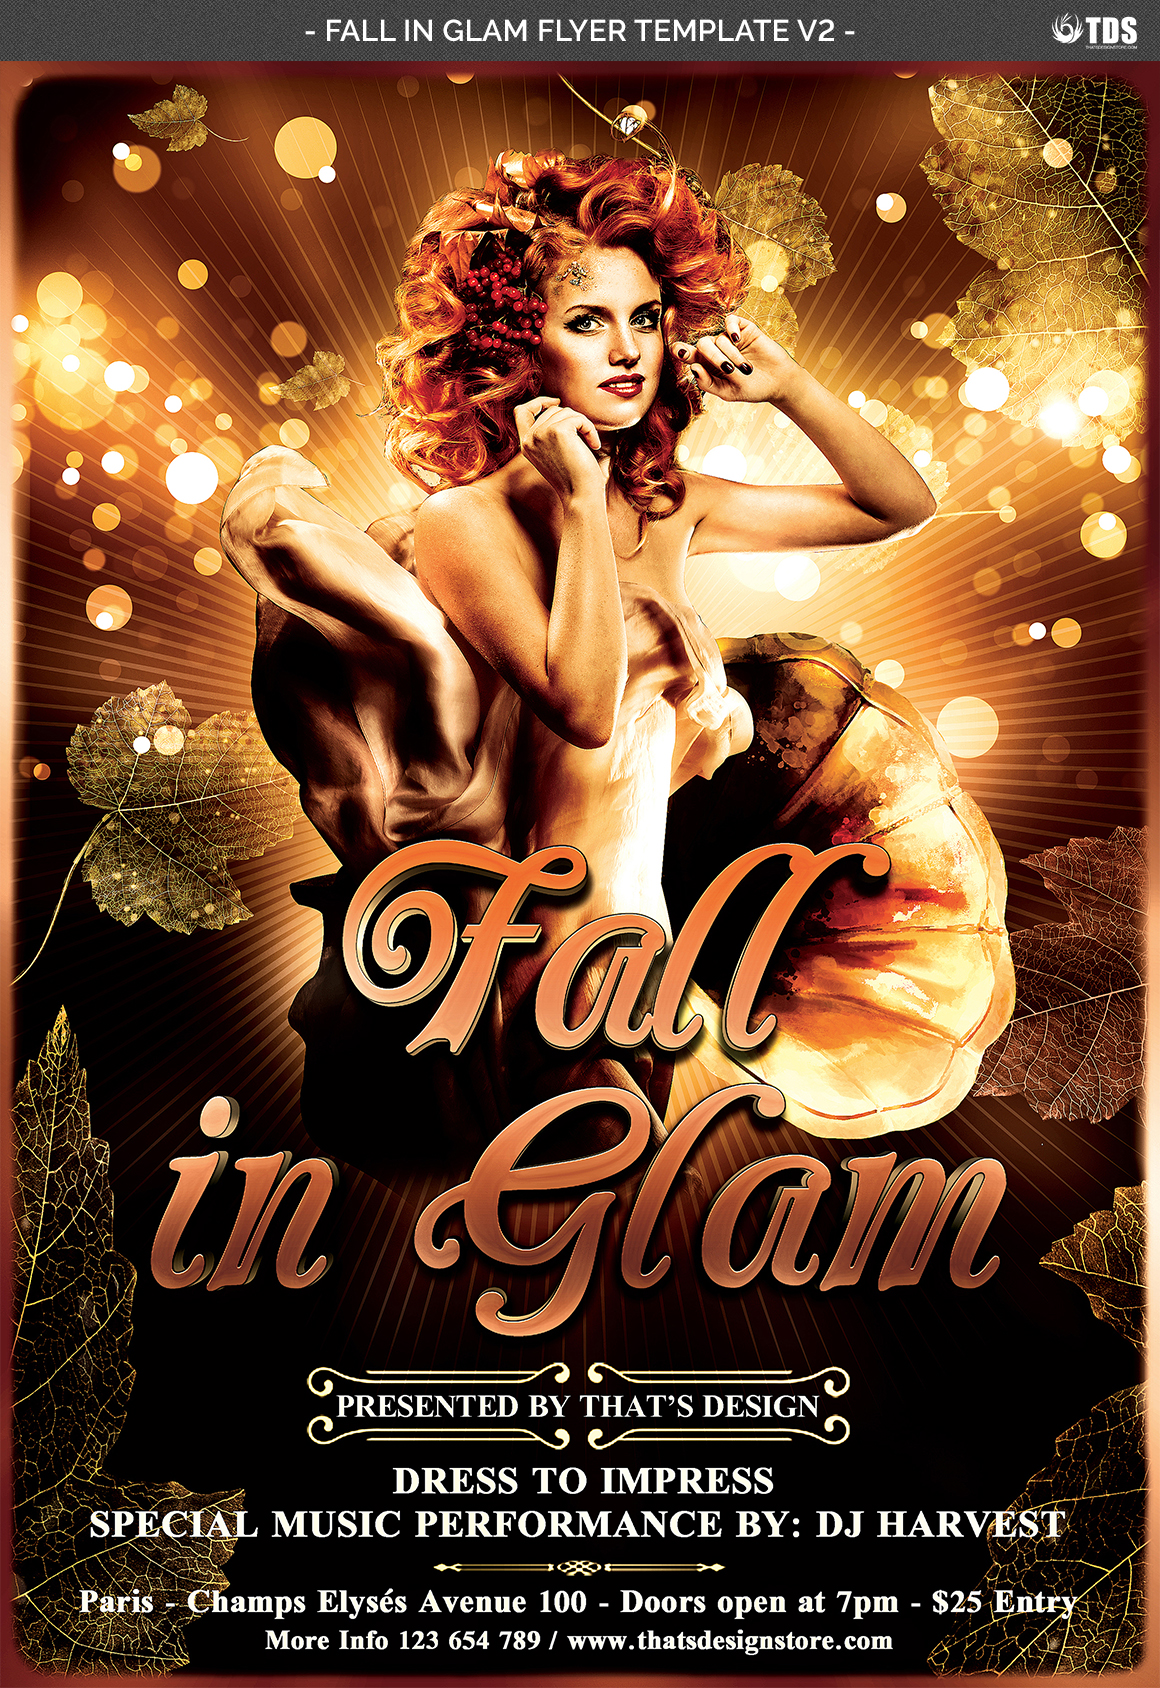 Fall in Glam Flyer Template V2 example image 7